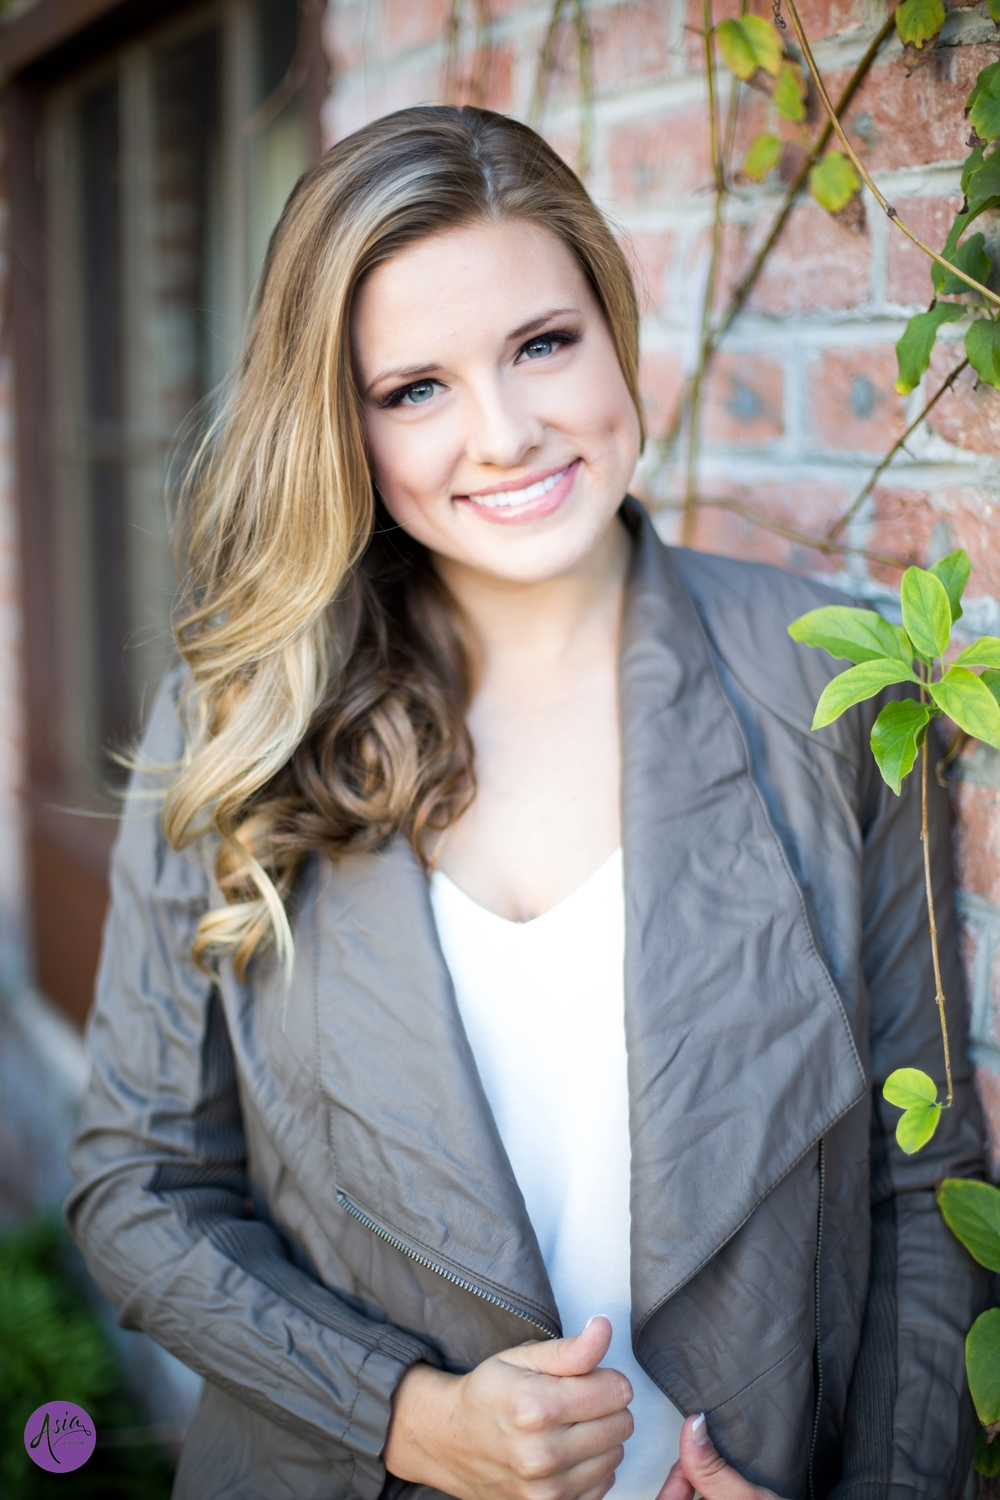 Jillian Senior Photos Asia Croson Photography-4980_Asia Croson Photography stomped.jpg